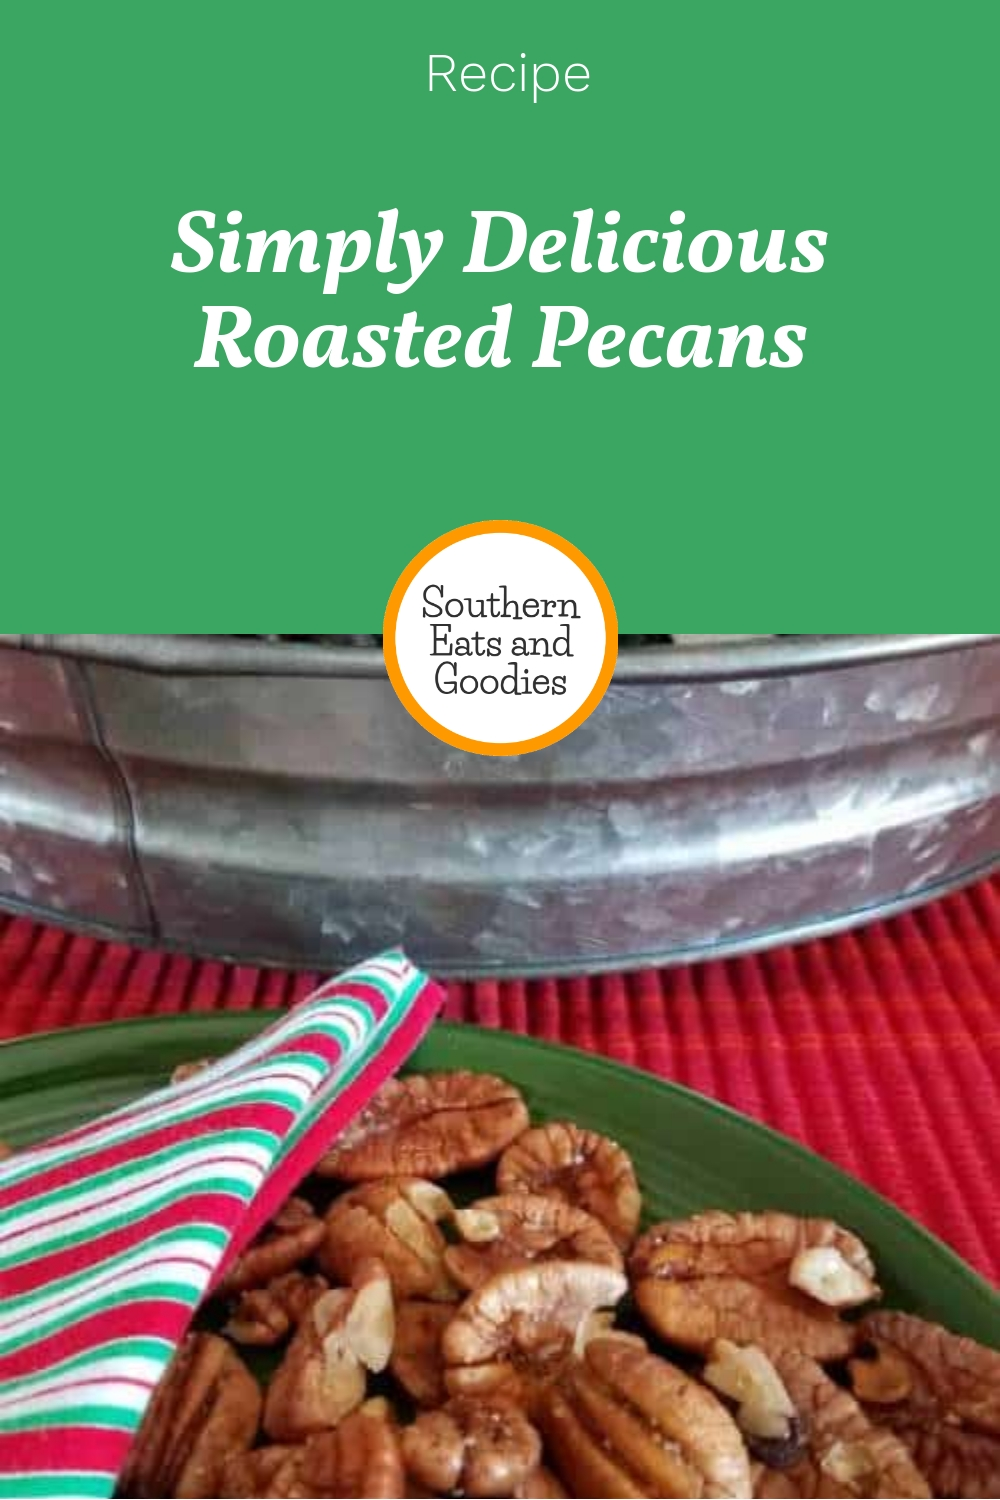 Simply Delicious Roasted Pecans